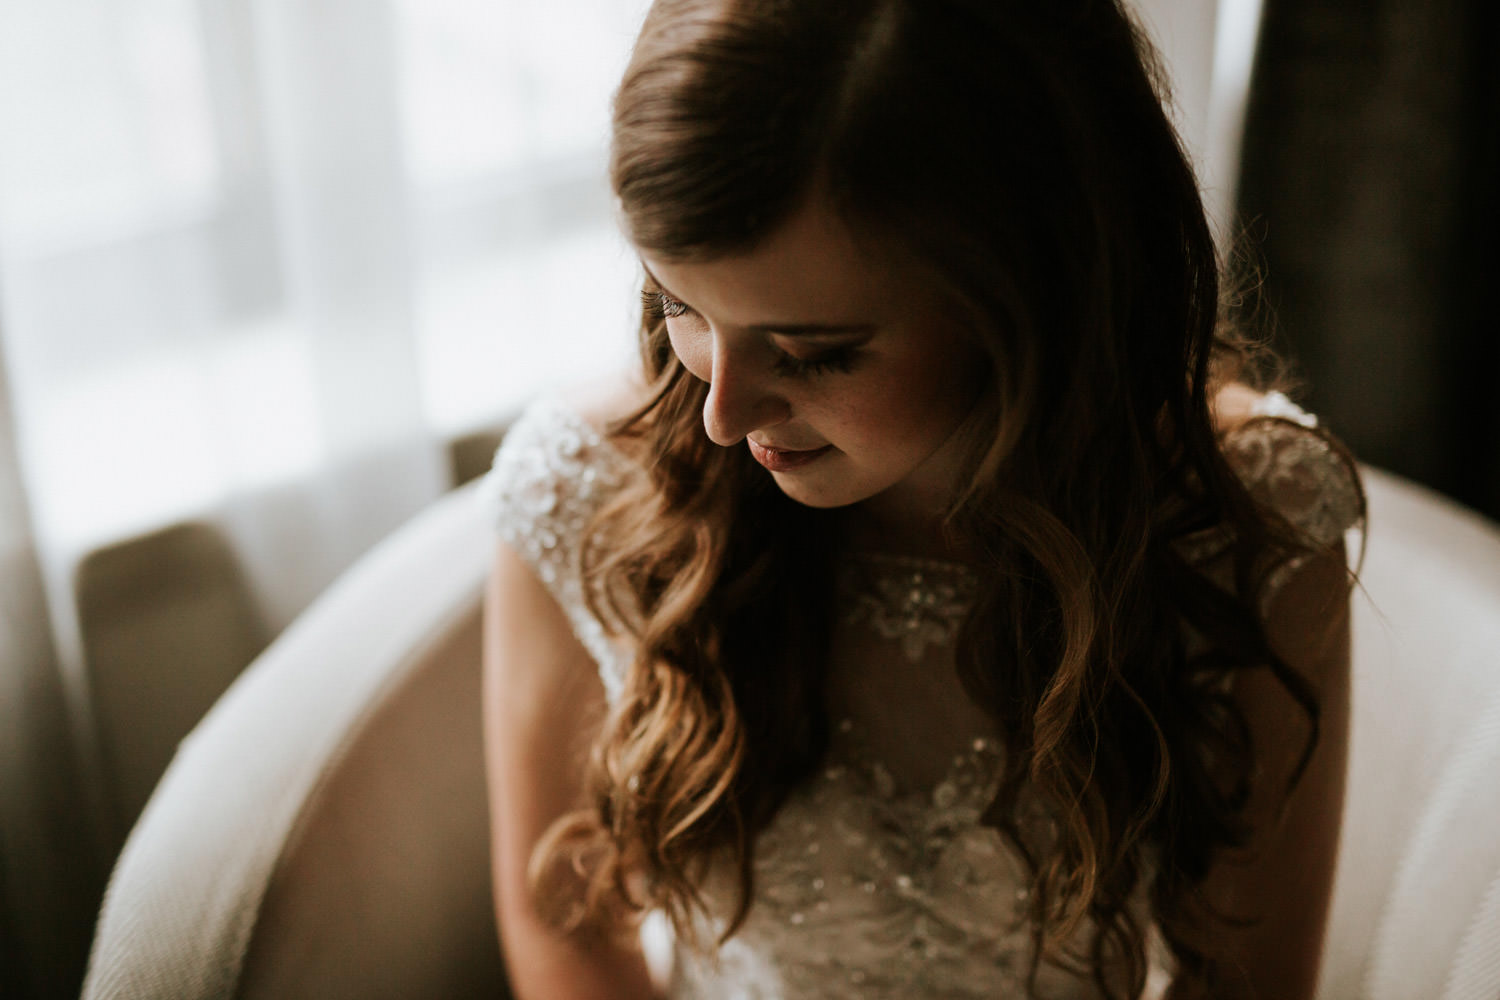 Intimate portrait of the bride photographed in downtown hotel in Chicago